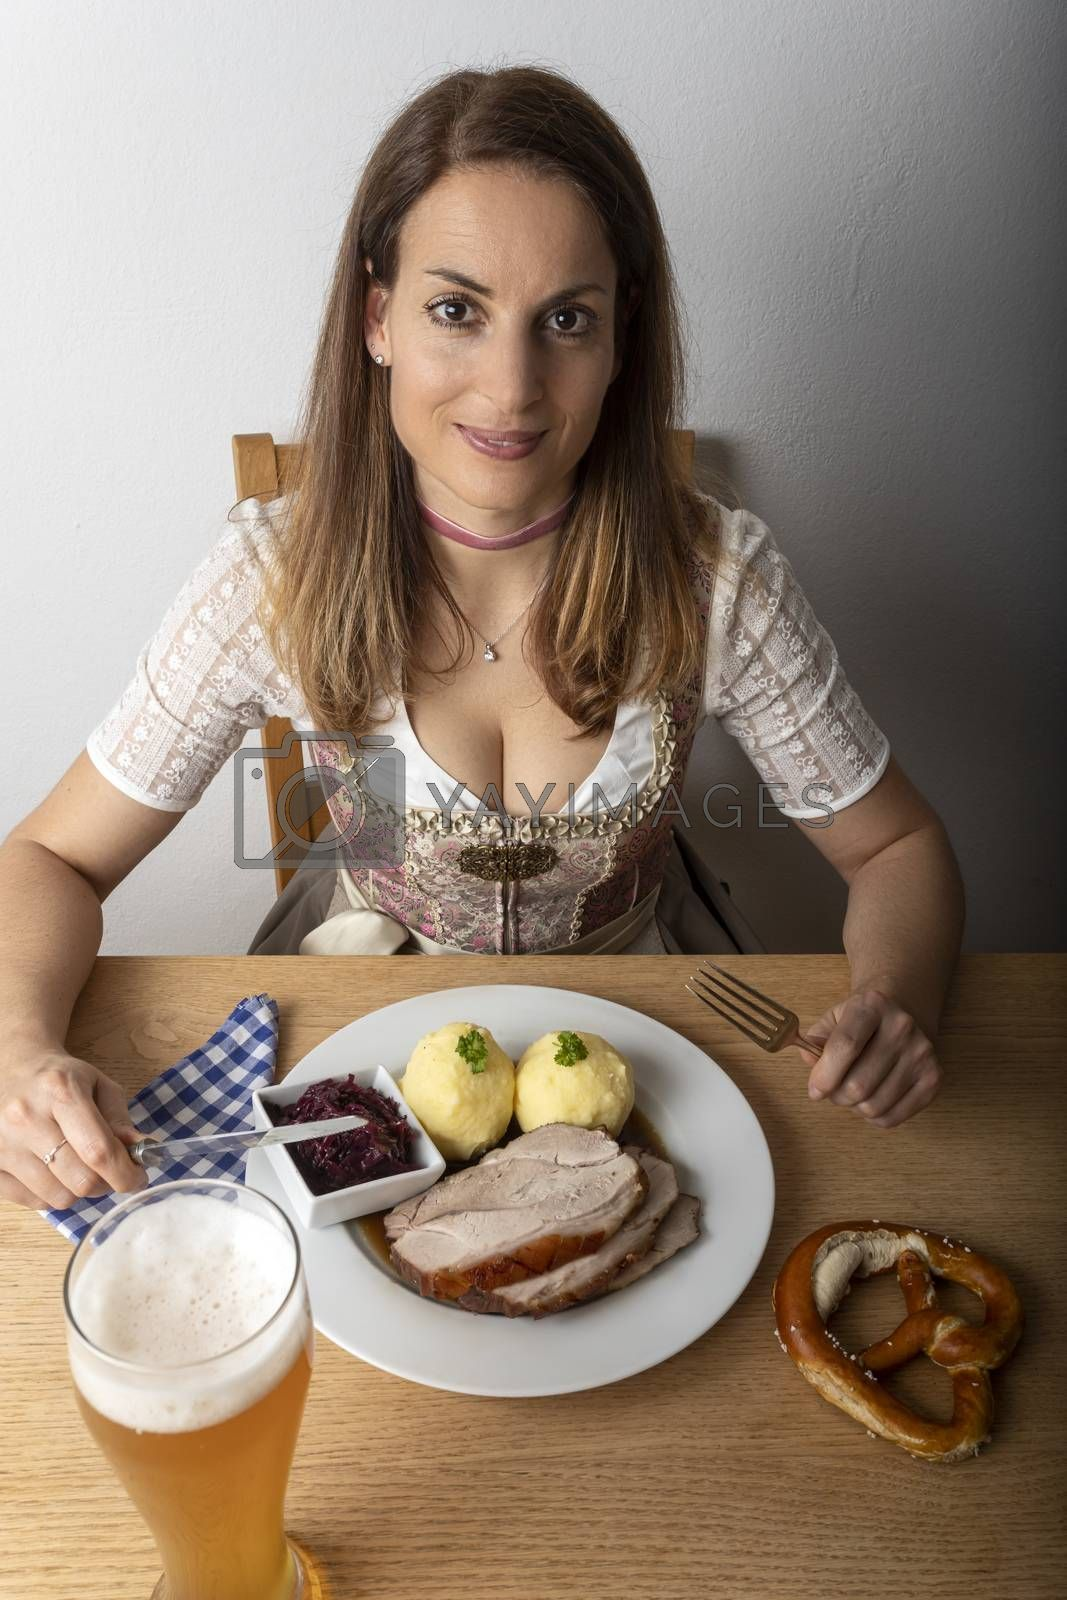 woman with a dirndl eating roasted pork by bernjuer